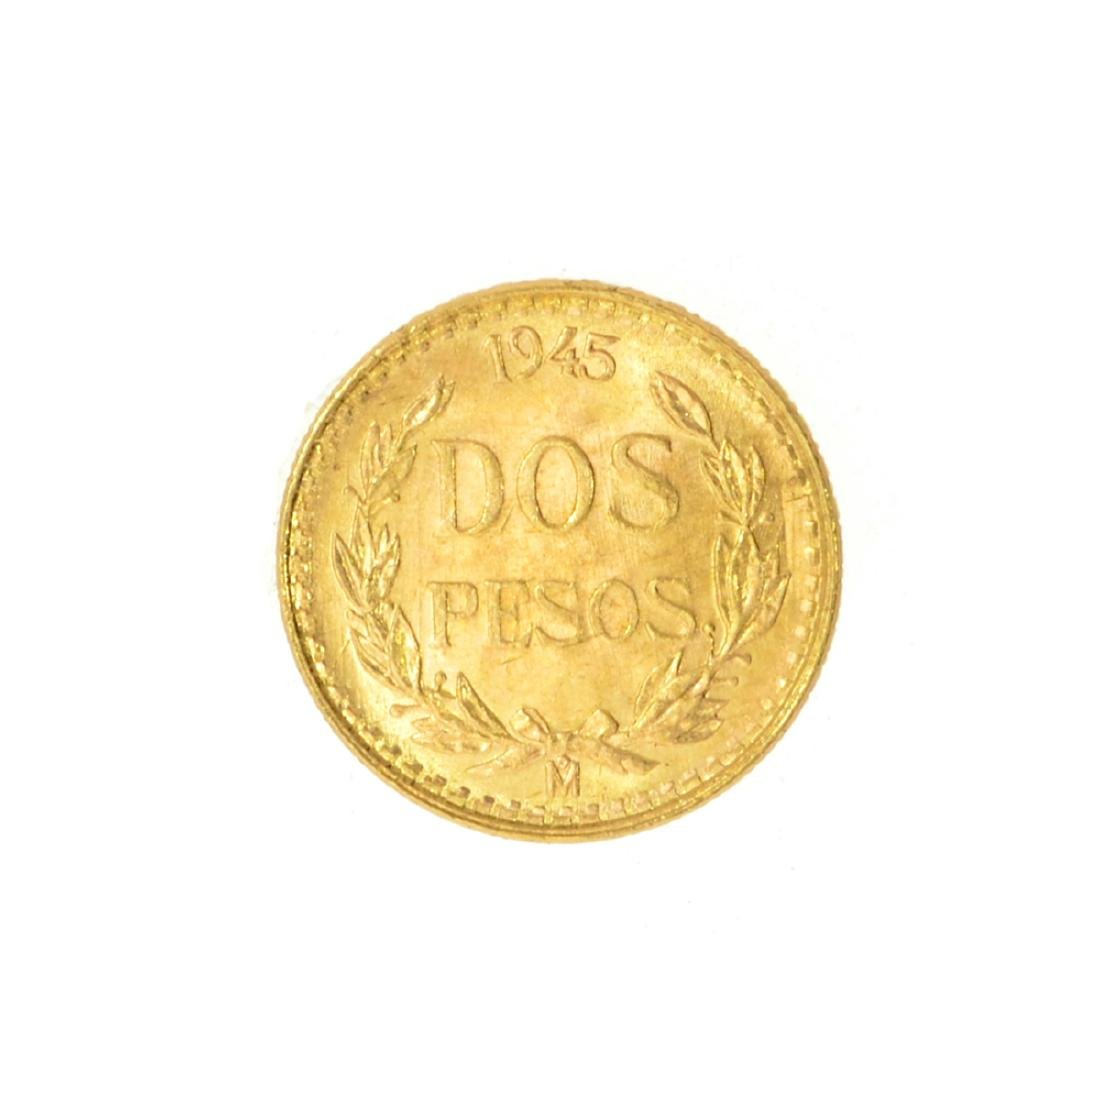 Rare 1945 Mexico Uncirculared Dos Pesos Gold Coin